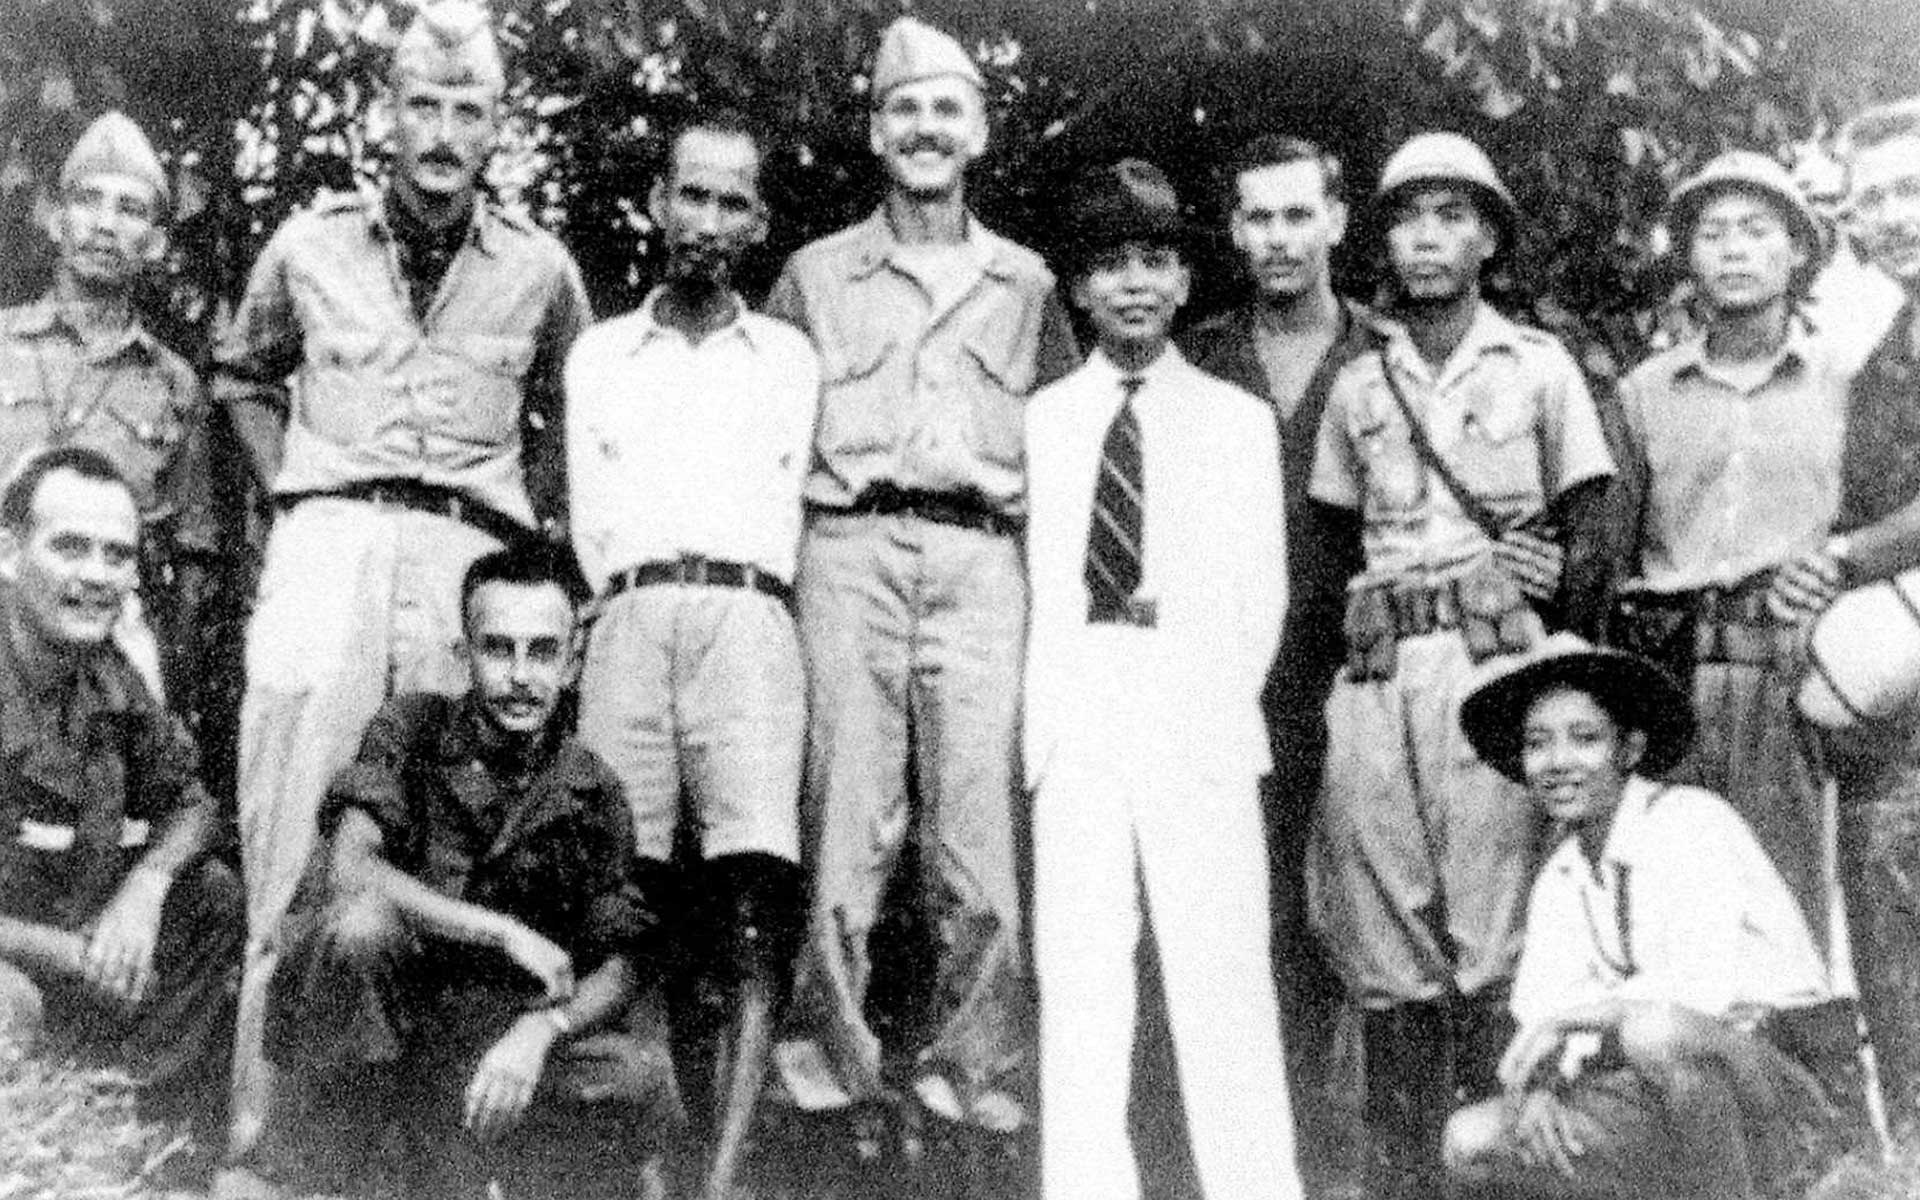 historical picture of President Ho Chi Minh